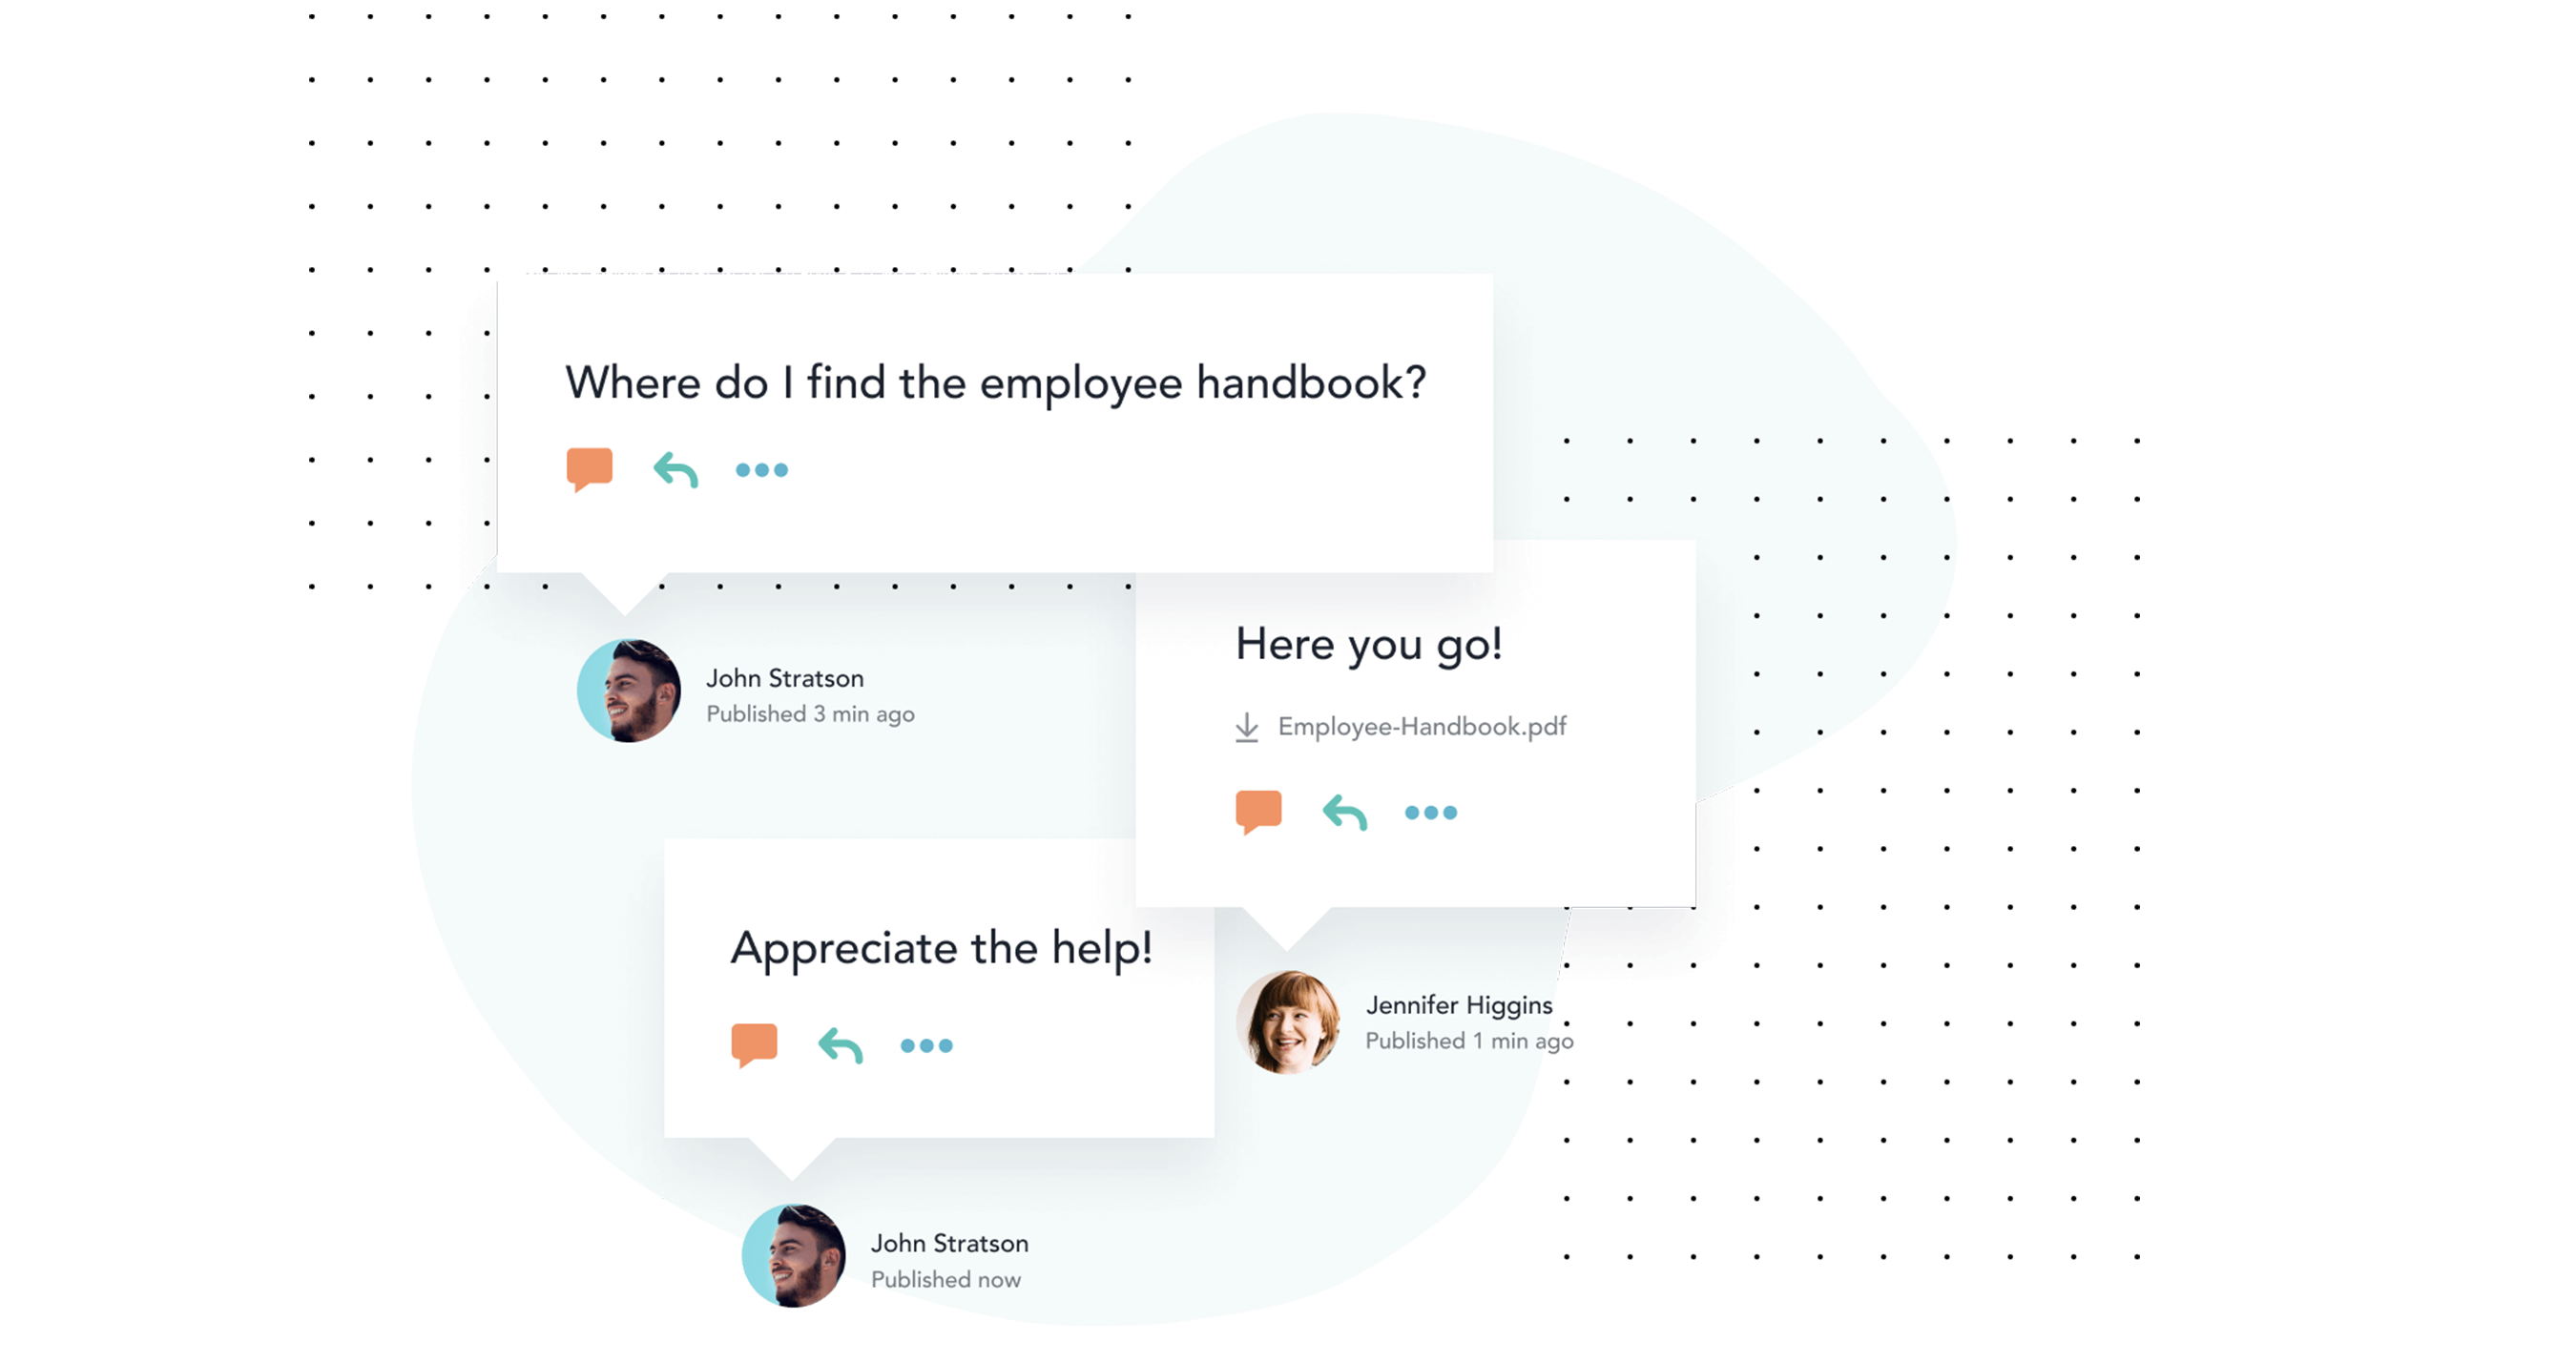 Start typing a question and Bloomfire's Q&A engine will show you if it's already been asked and answered. If you can't find the information you need, post a new question and crowdsource responses from experts.